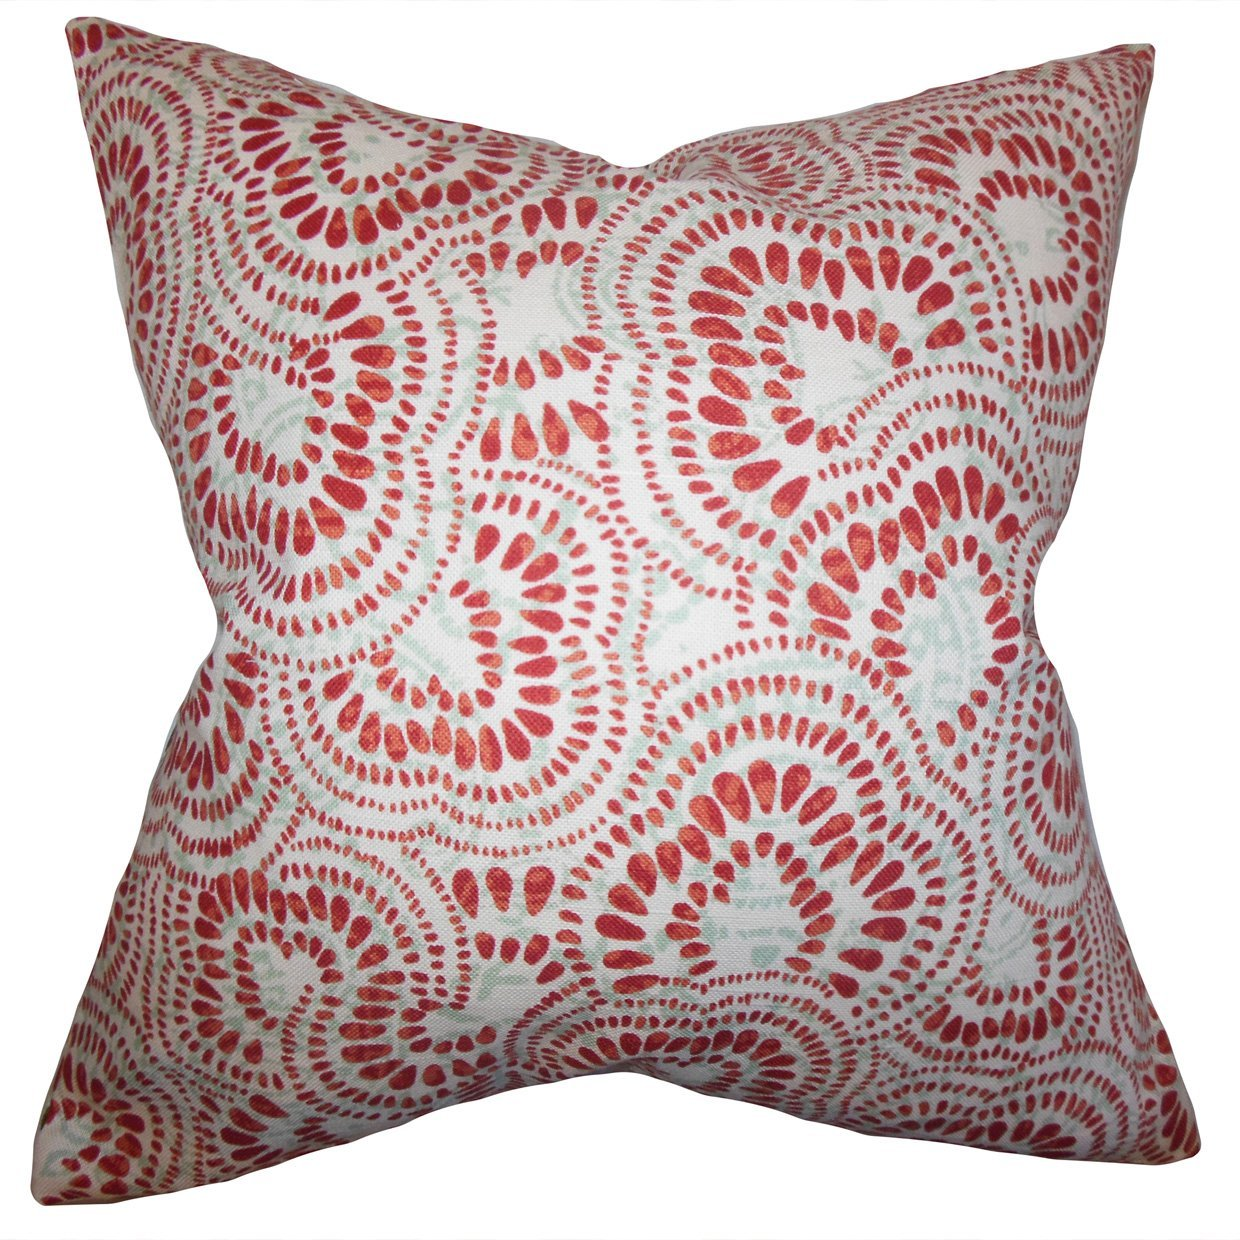 The Pillow Collection Glynis Floral Bedding Sham Mint Red Queen//20 x 30